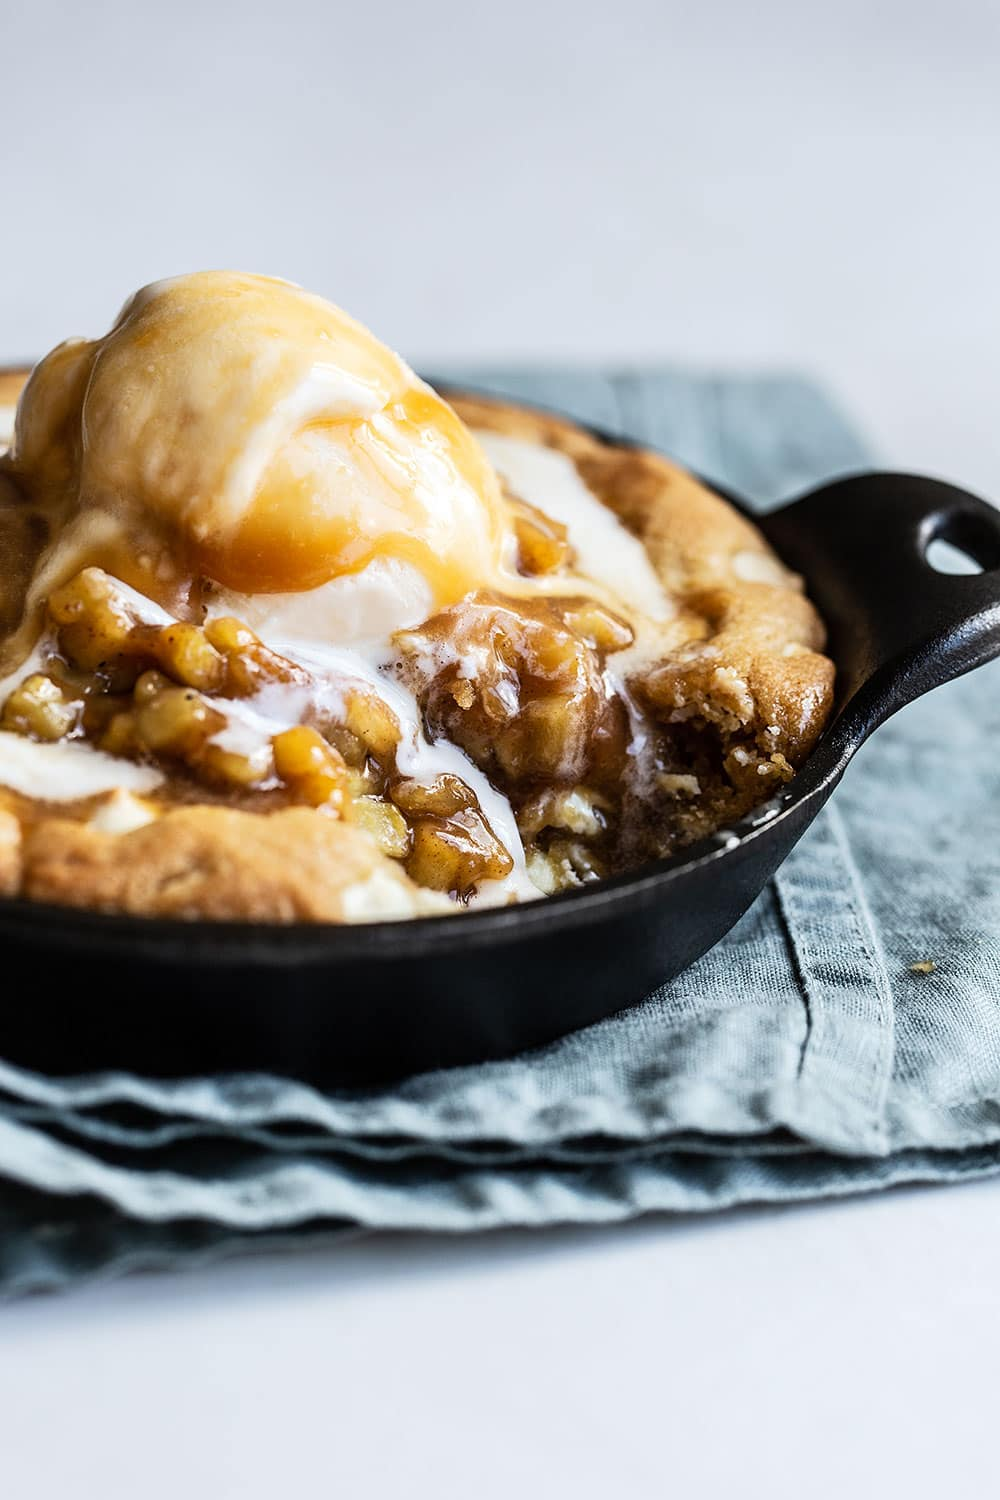 A bite taken out of gooey white chocolate pizookie topped with apple pie filling, caramel, and ice cream